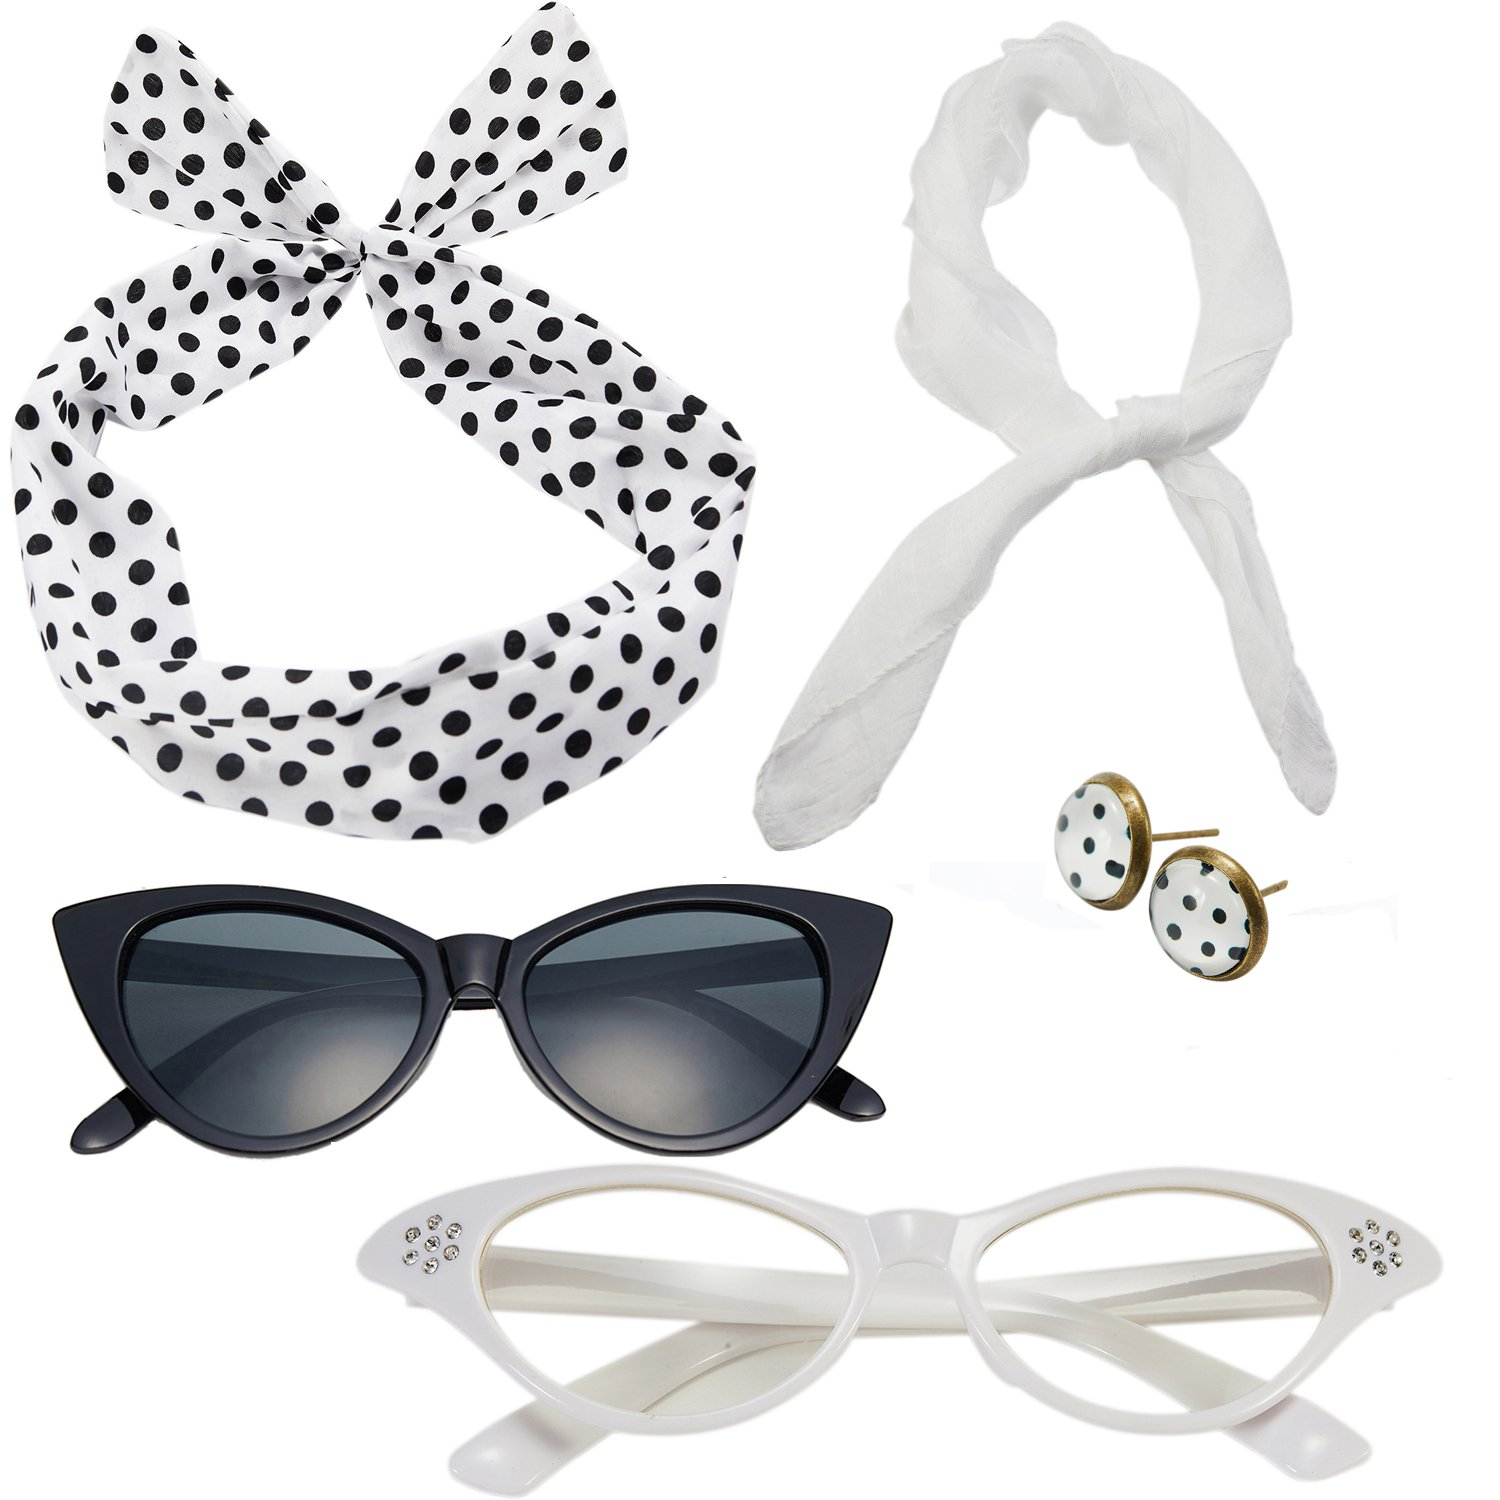 8c34ad3f96f 50 s Costume Accessories Set Chiffon Scarf Cat Eye Glasses Bandana Tie  Headband and Earrings Black) QNS001-50-1